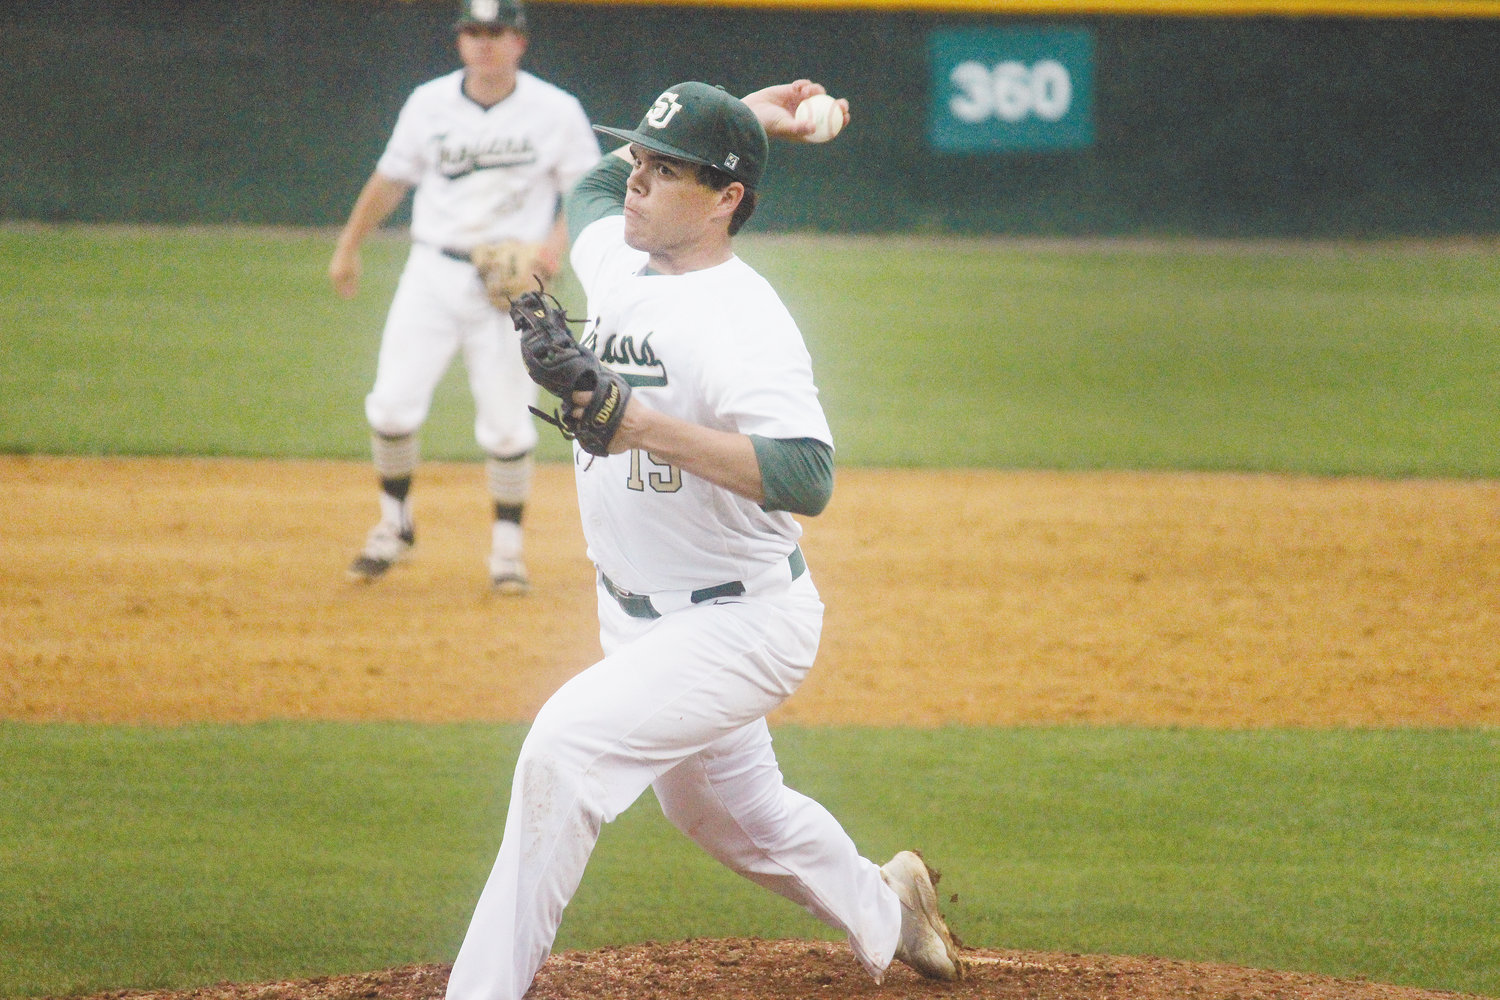 Justin Hamilton whips in a pitch against East Wake on Friday. The South Johnston junior tossed six innings and gave up just one run in the Trojans' 6-1 win.